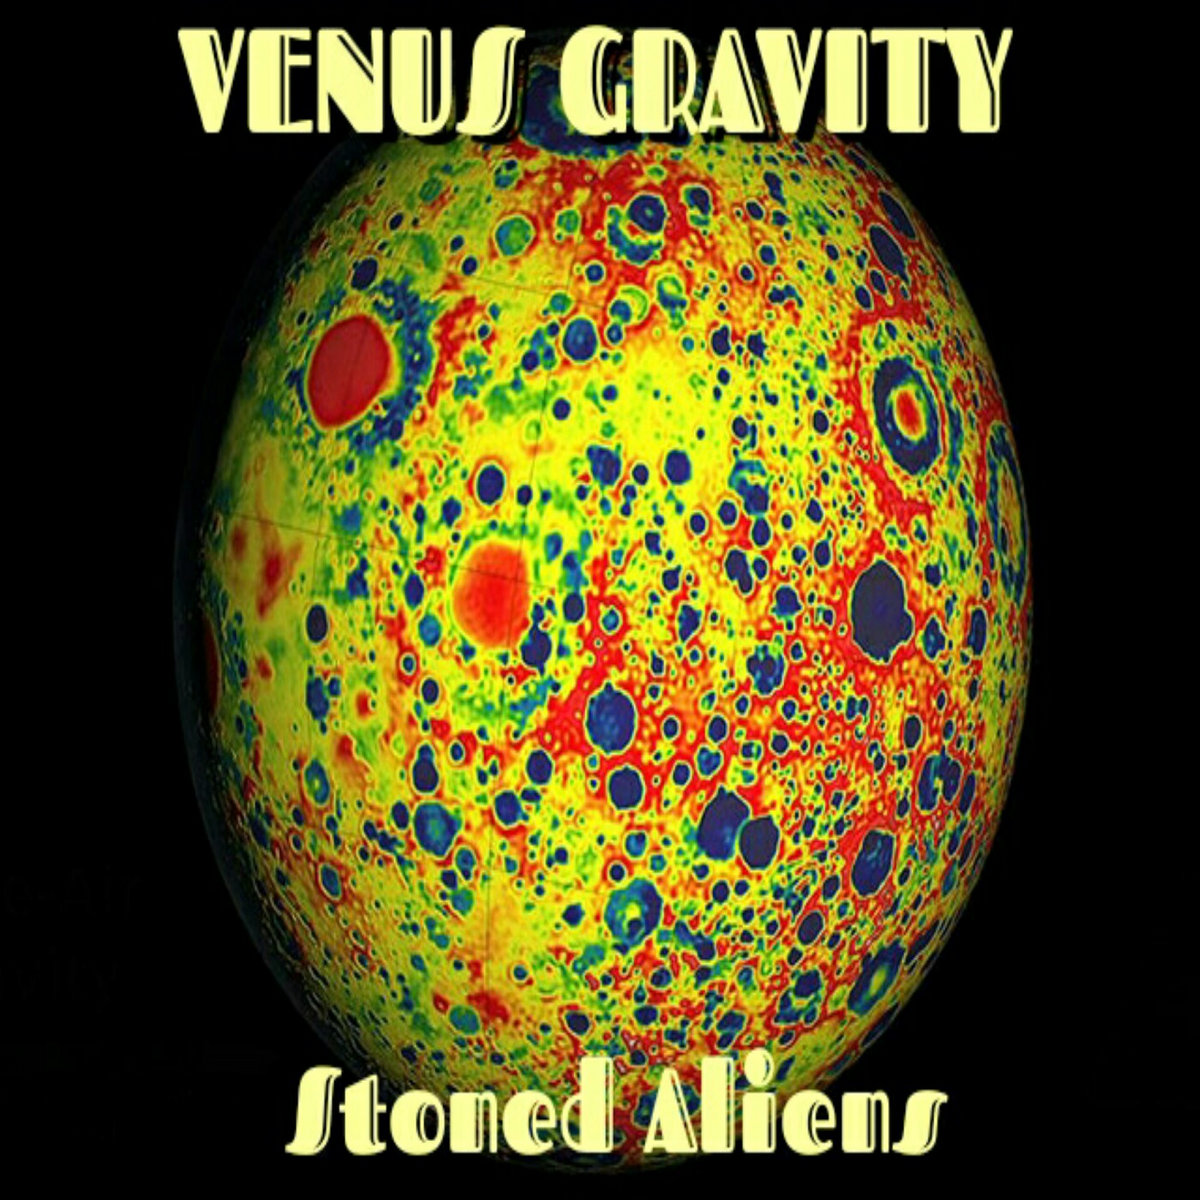 by venus gravity